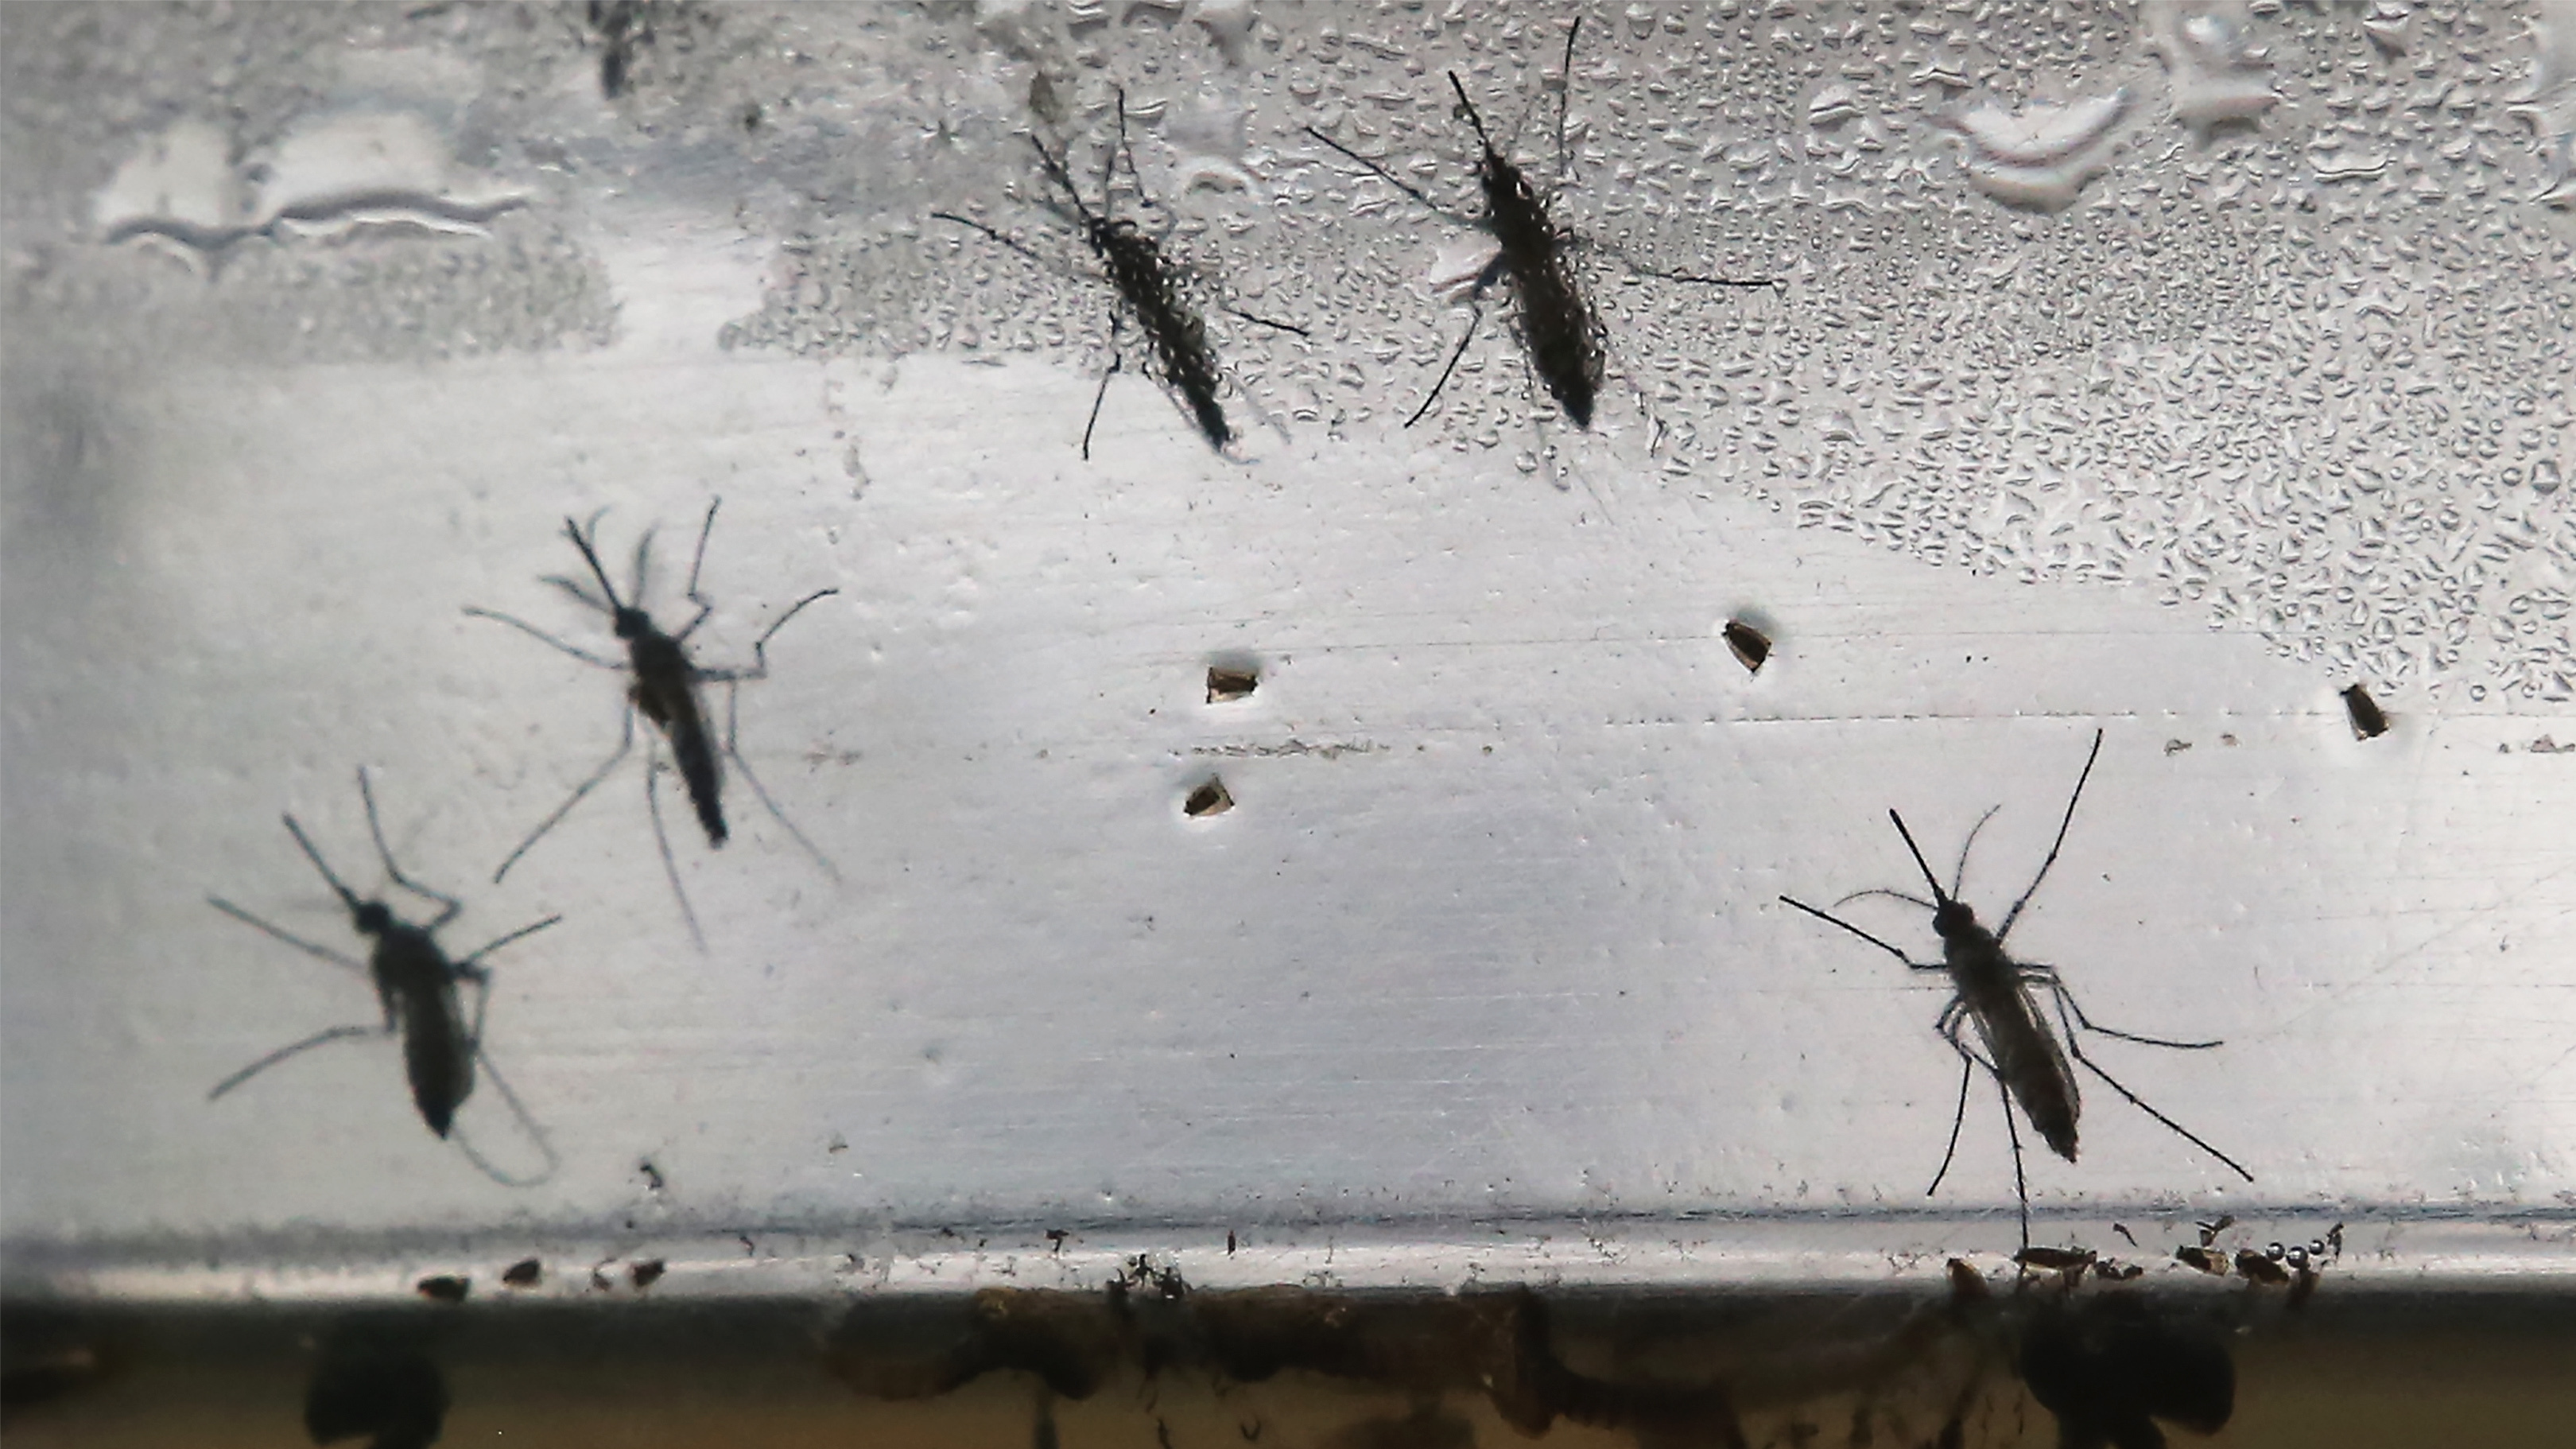 npr.org - James Doubek - To Shrink The Mosquito Population, Scientists Are Releasing 20 Million Of Them